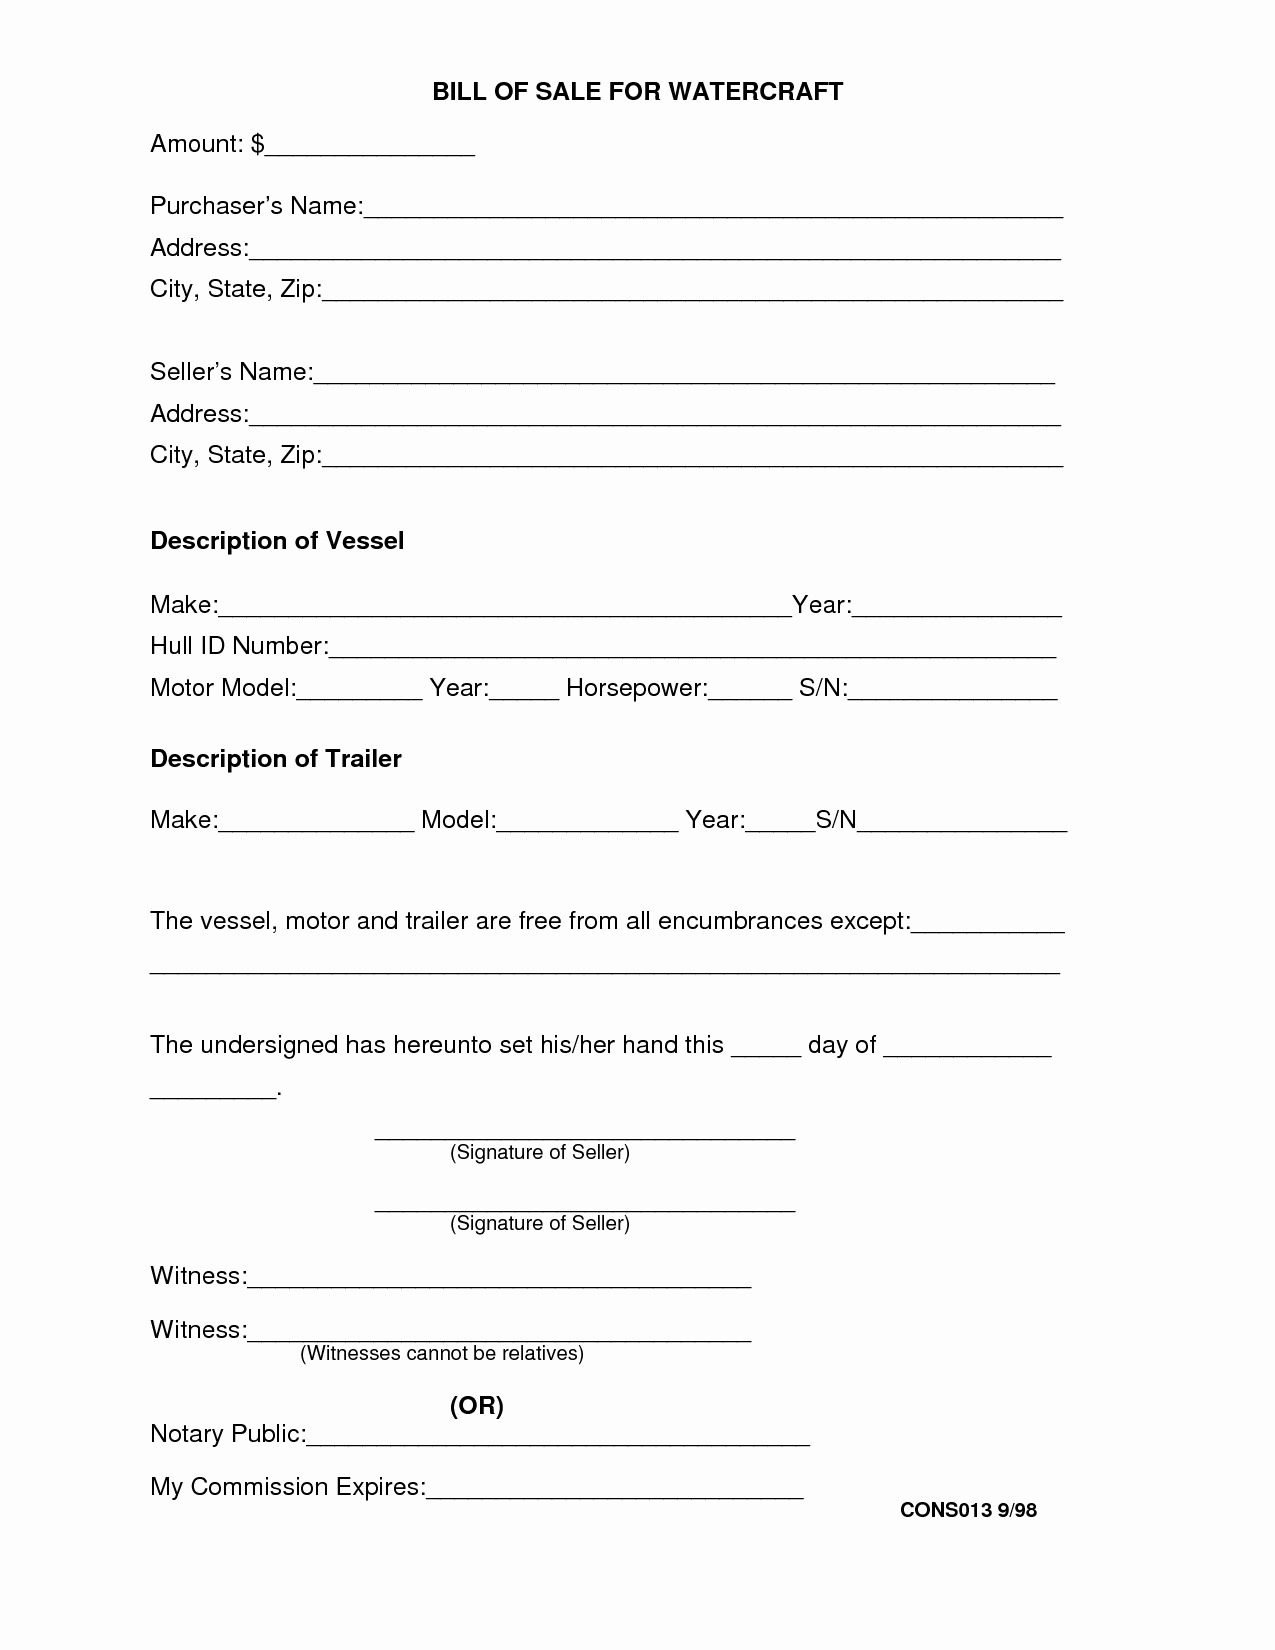 Alabama Vehicle Bill Of Sale Gift Unique Travel Trailer Bill Sale Free Printable Documents